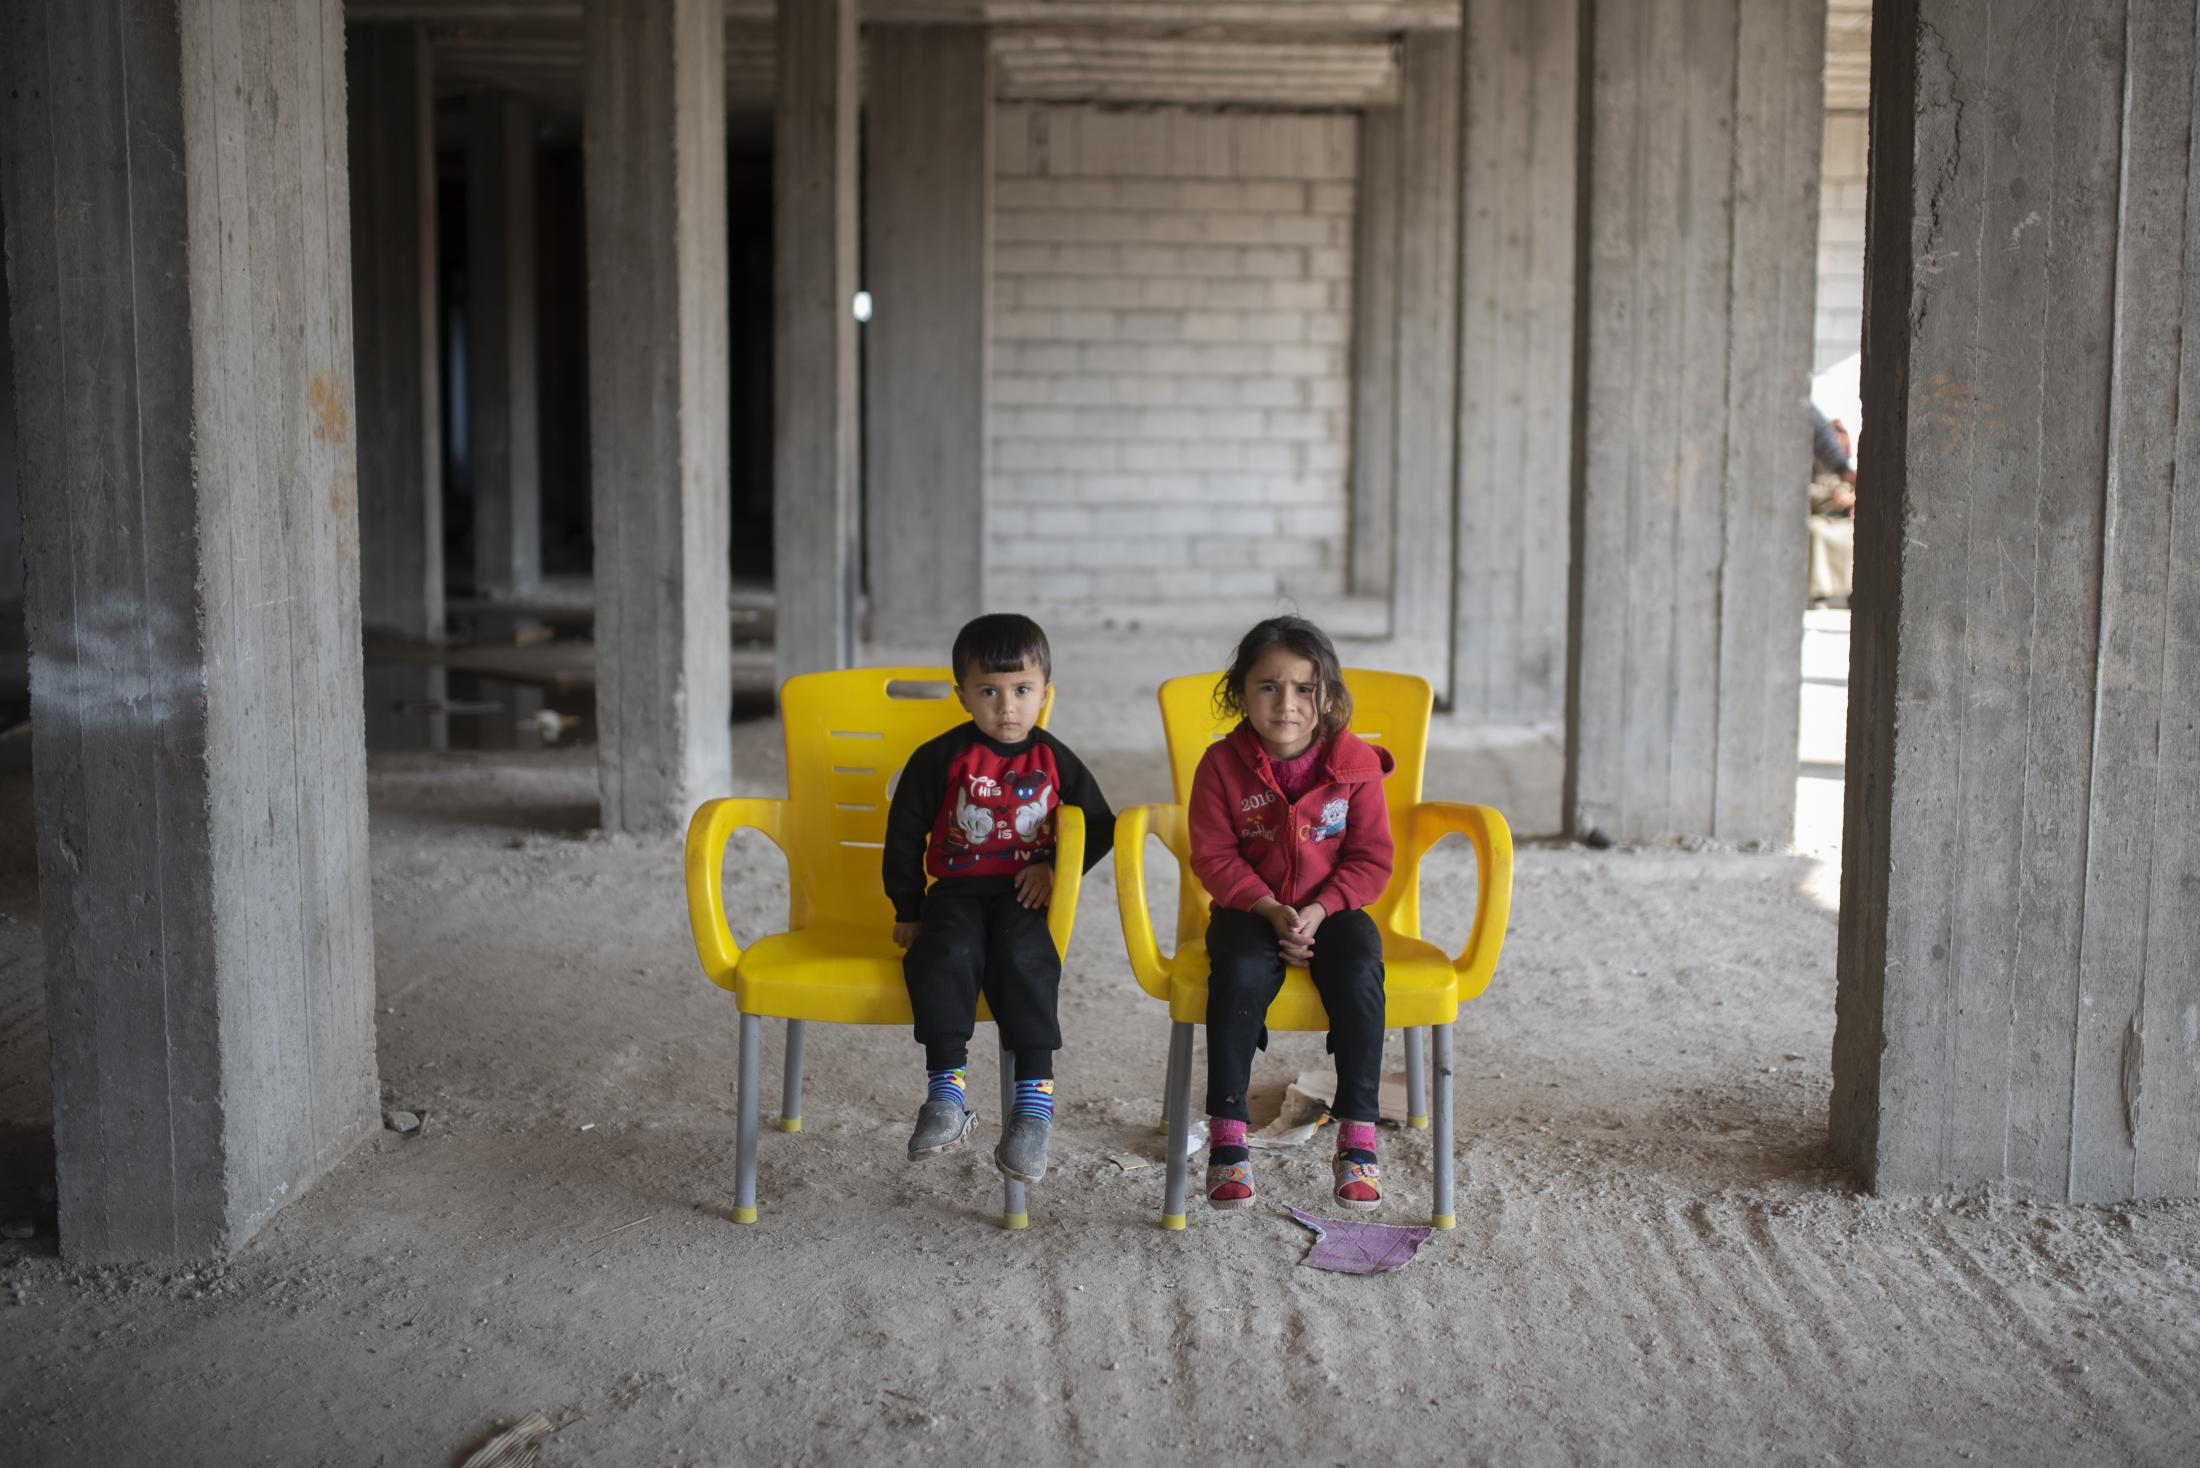 A boy and a girl waiting their father in yellow chairs inside a building in construction. After the withdrawal of US troops from northern Syria in October 2019, Turkey launched an offensive against the predominantly Kurdish areas in the northeast of the country along Islamist forces. Calls for war crimes investigations into the conduct of Ankara-backed militias are mounting ever since. (Andoni Lubaki / Euskal Fondoa)